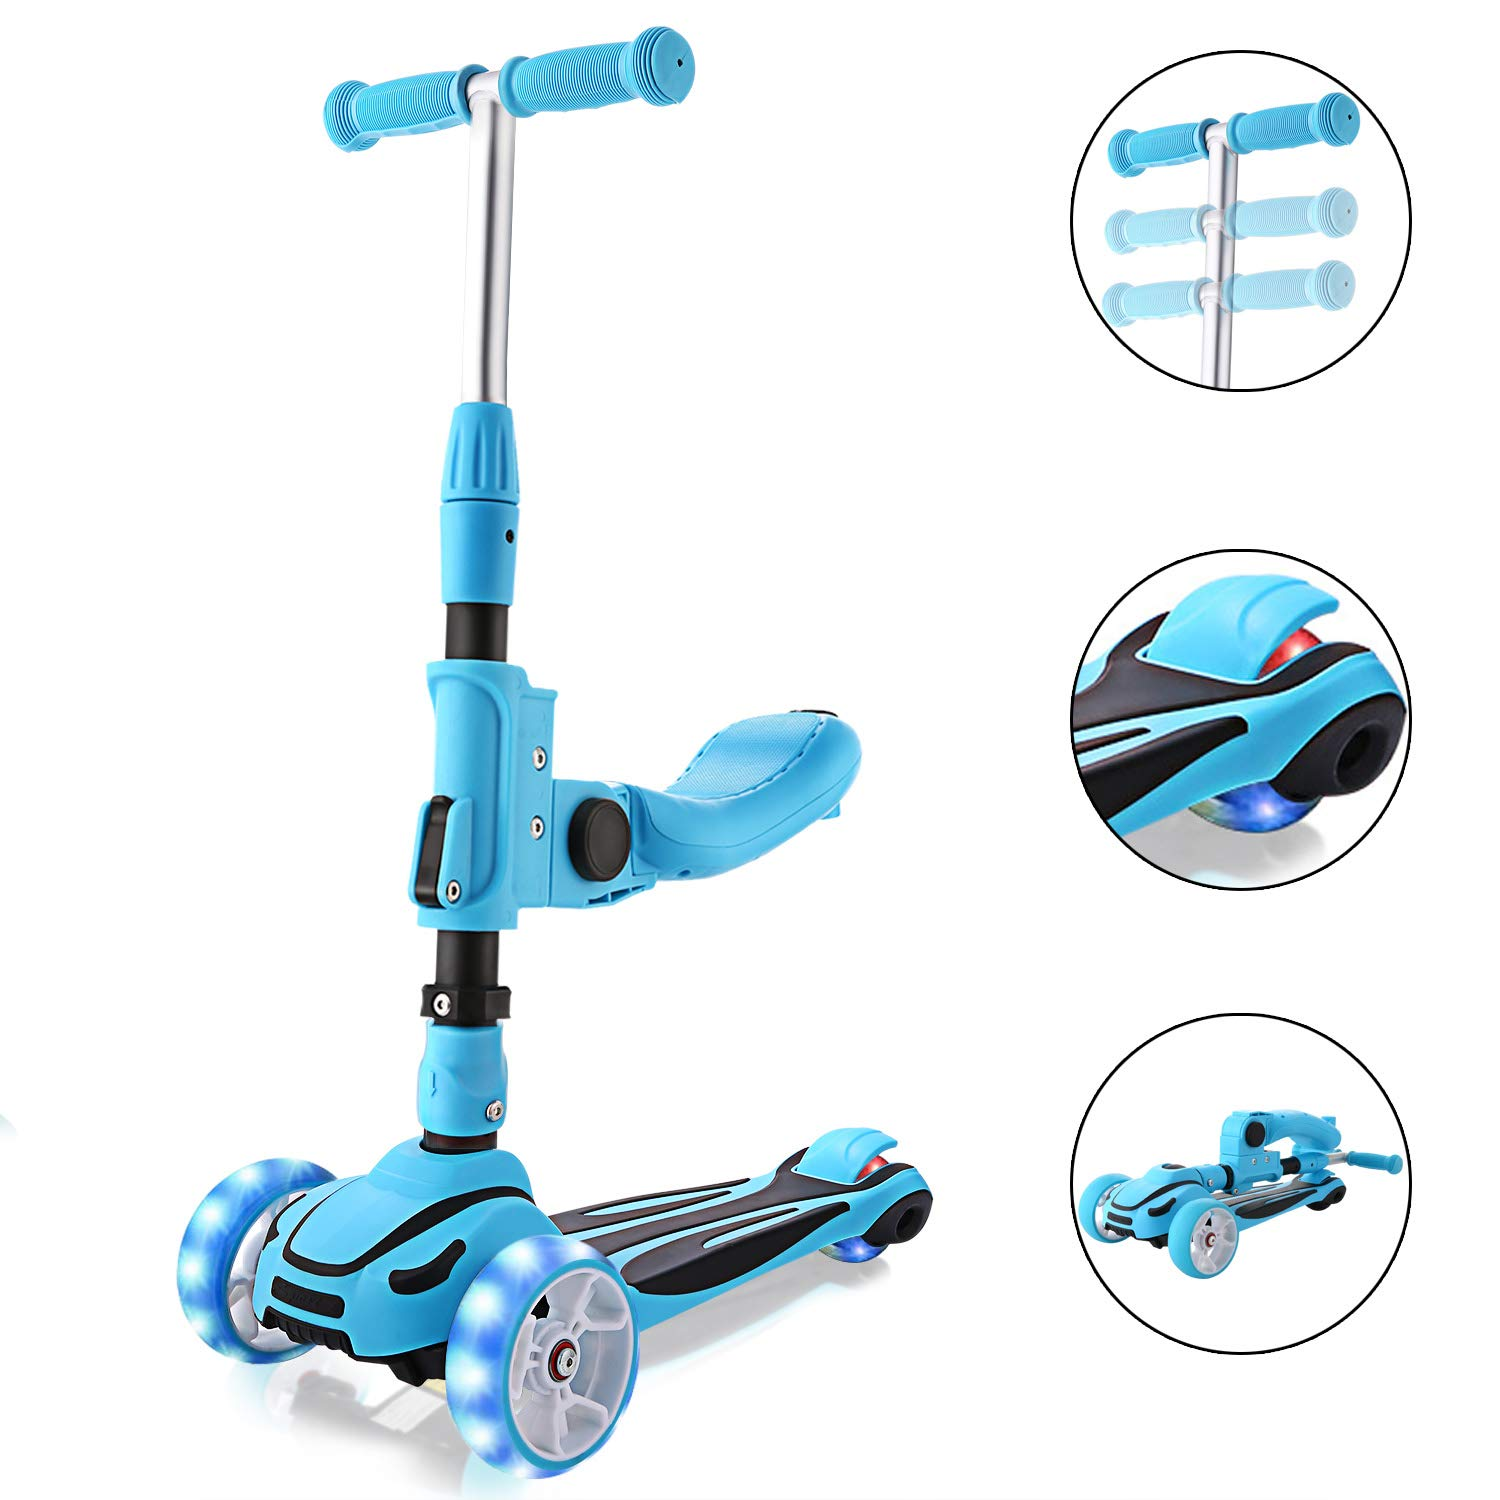 Hikole 2-in-1 Scooter for Kids with Folding Seats & Height Adjustable & Folding Scooters - 3 Lighting Wheels Kick Scooter for Girls Boys Great Outdoor Toy for Kids (Blue) by Hikole